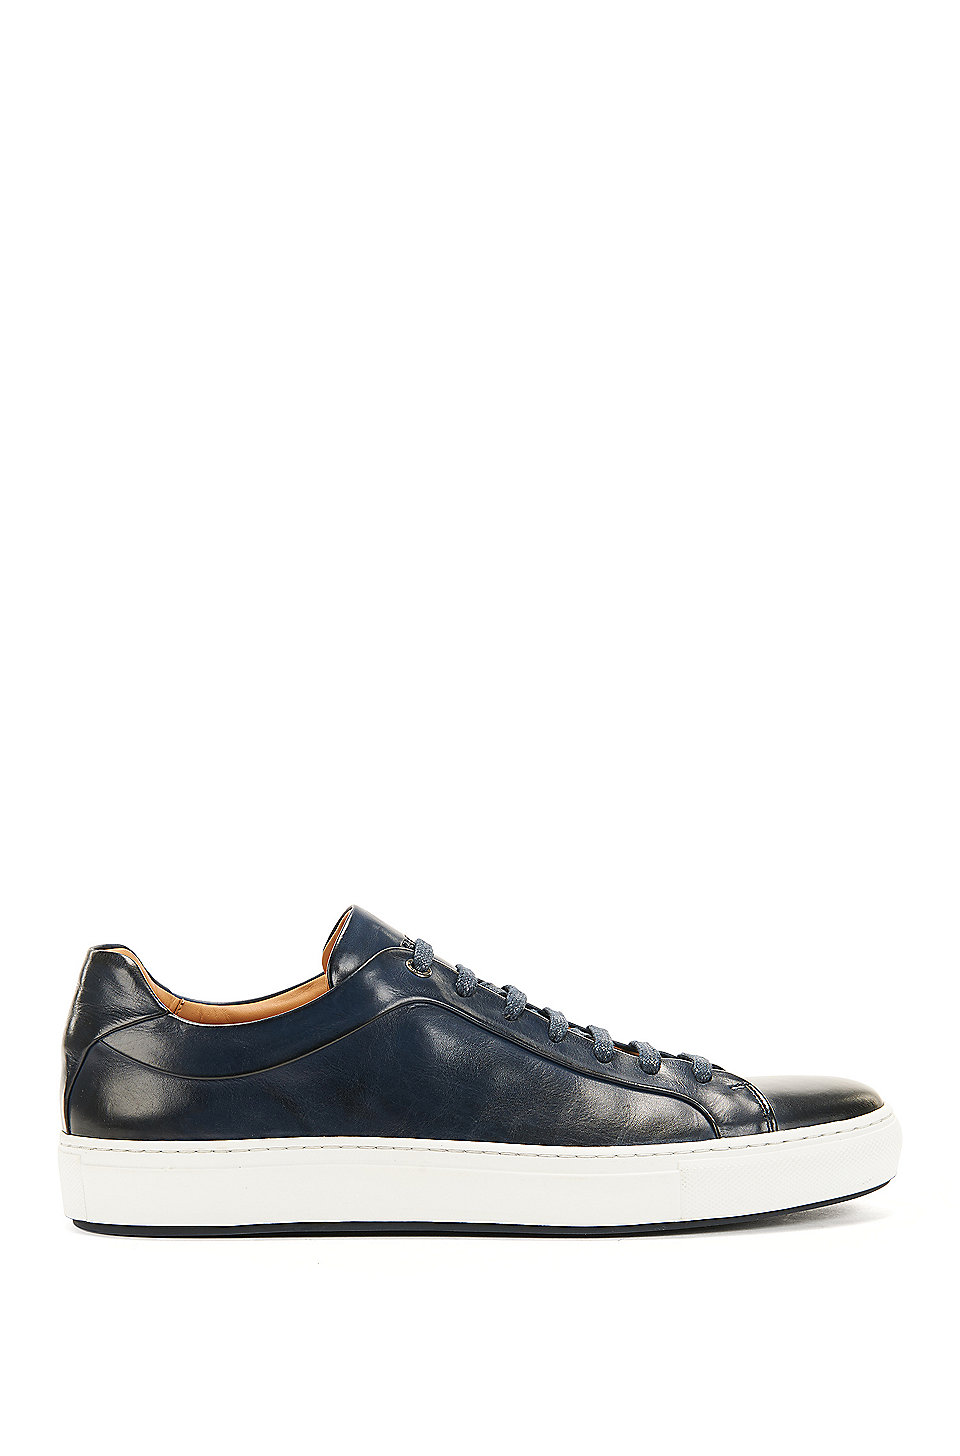 Boss Tennis Style Sneakers In Burnished Leather